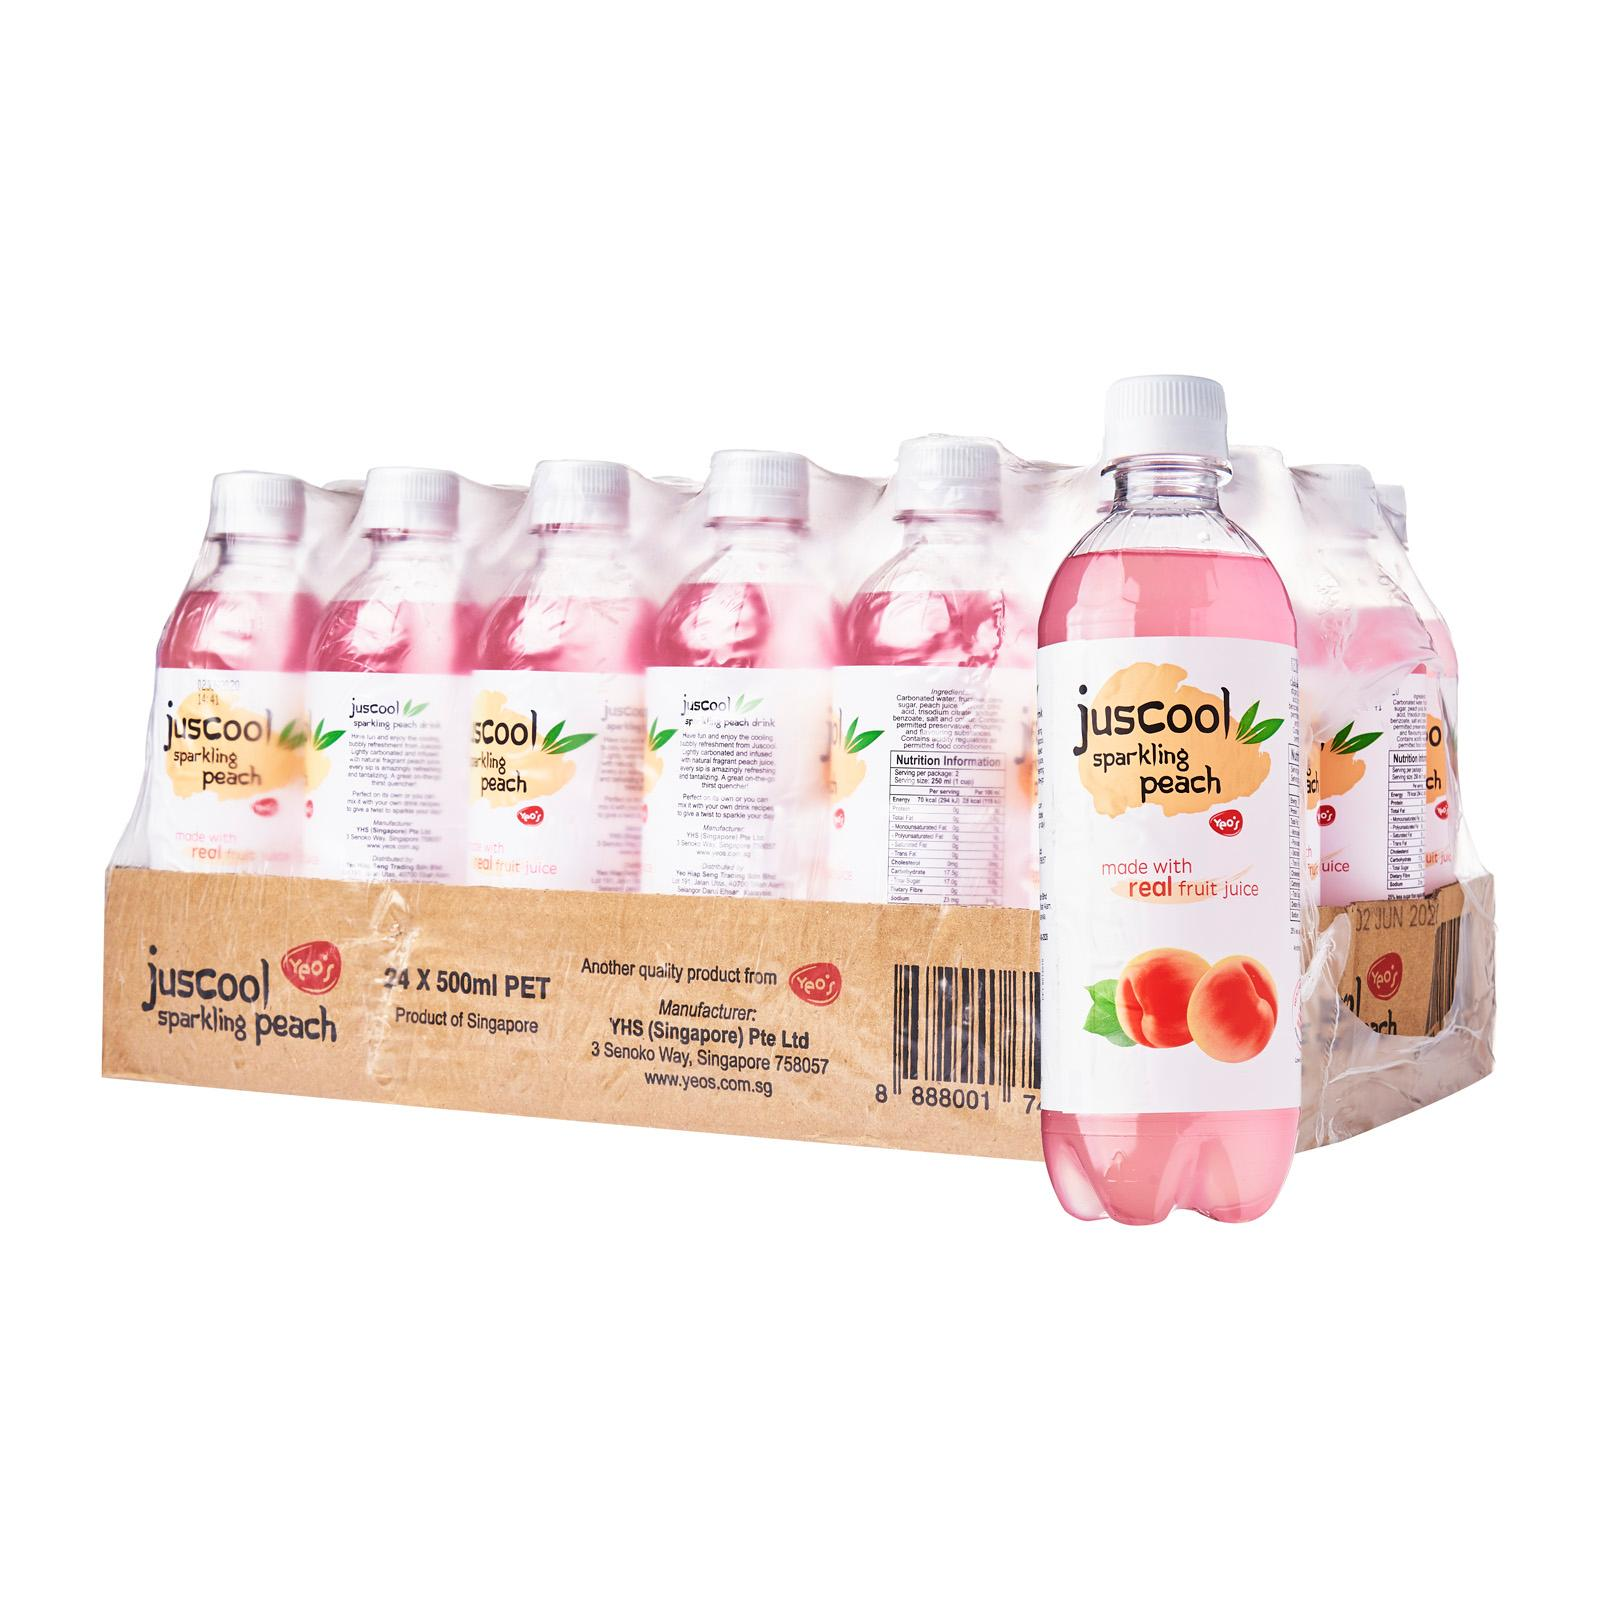 Yeo's Juscool Sparkling Fruit Juice Peach 24 x 500ml